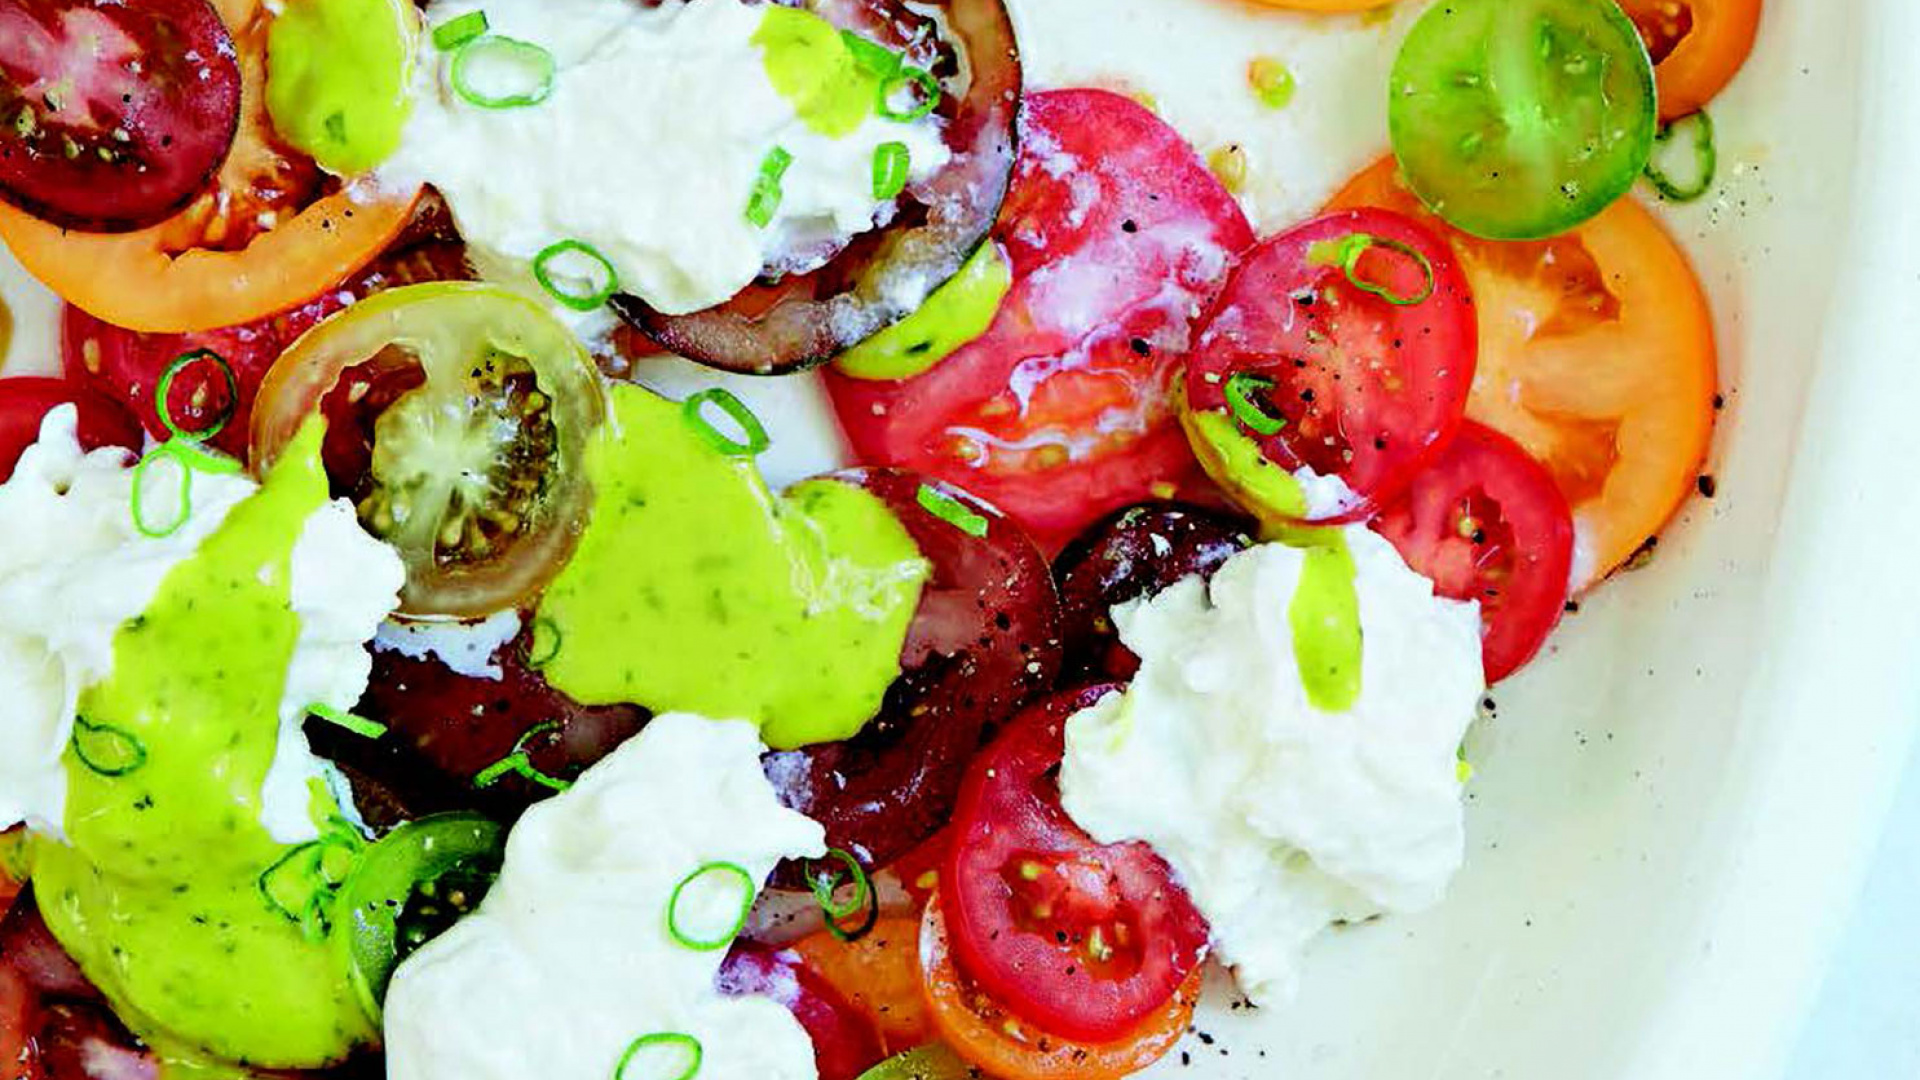 Peter Gordon's burrata and tomato salad with mango dressing